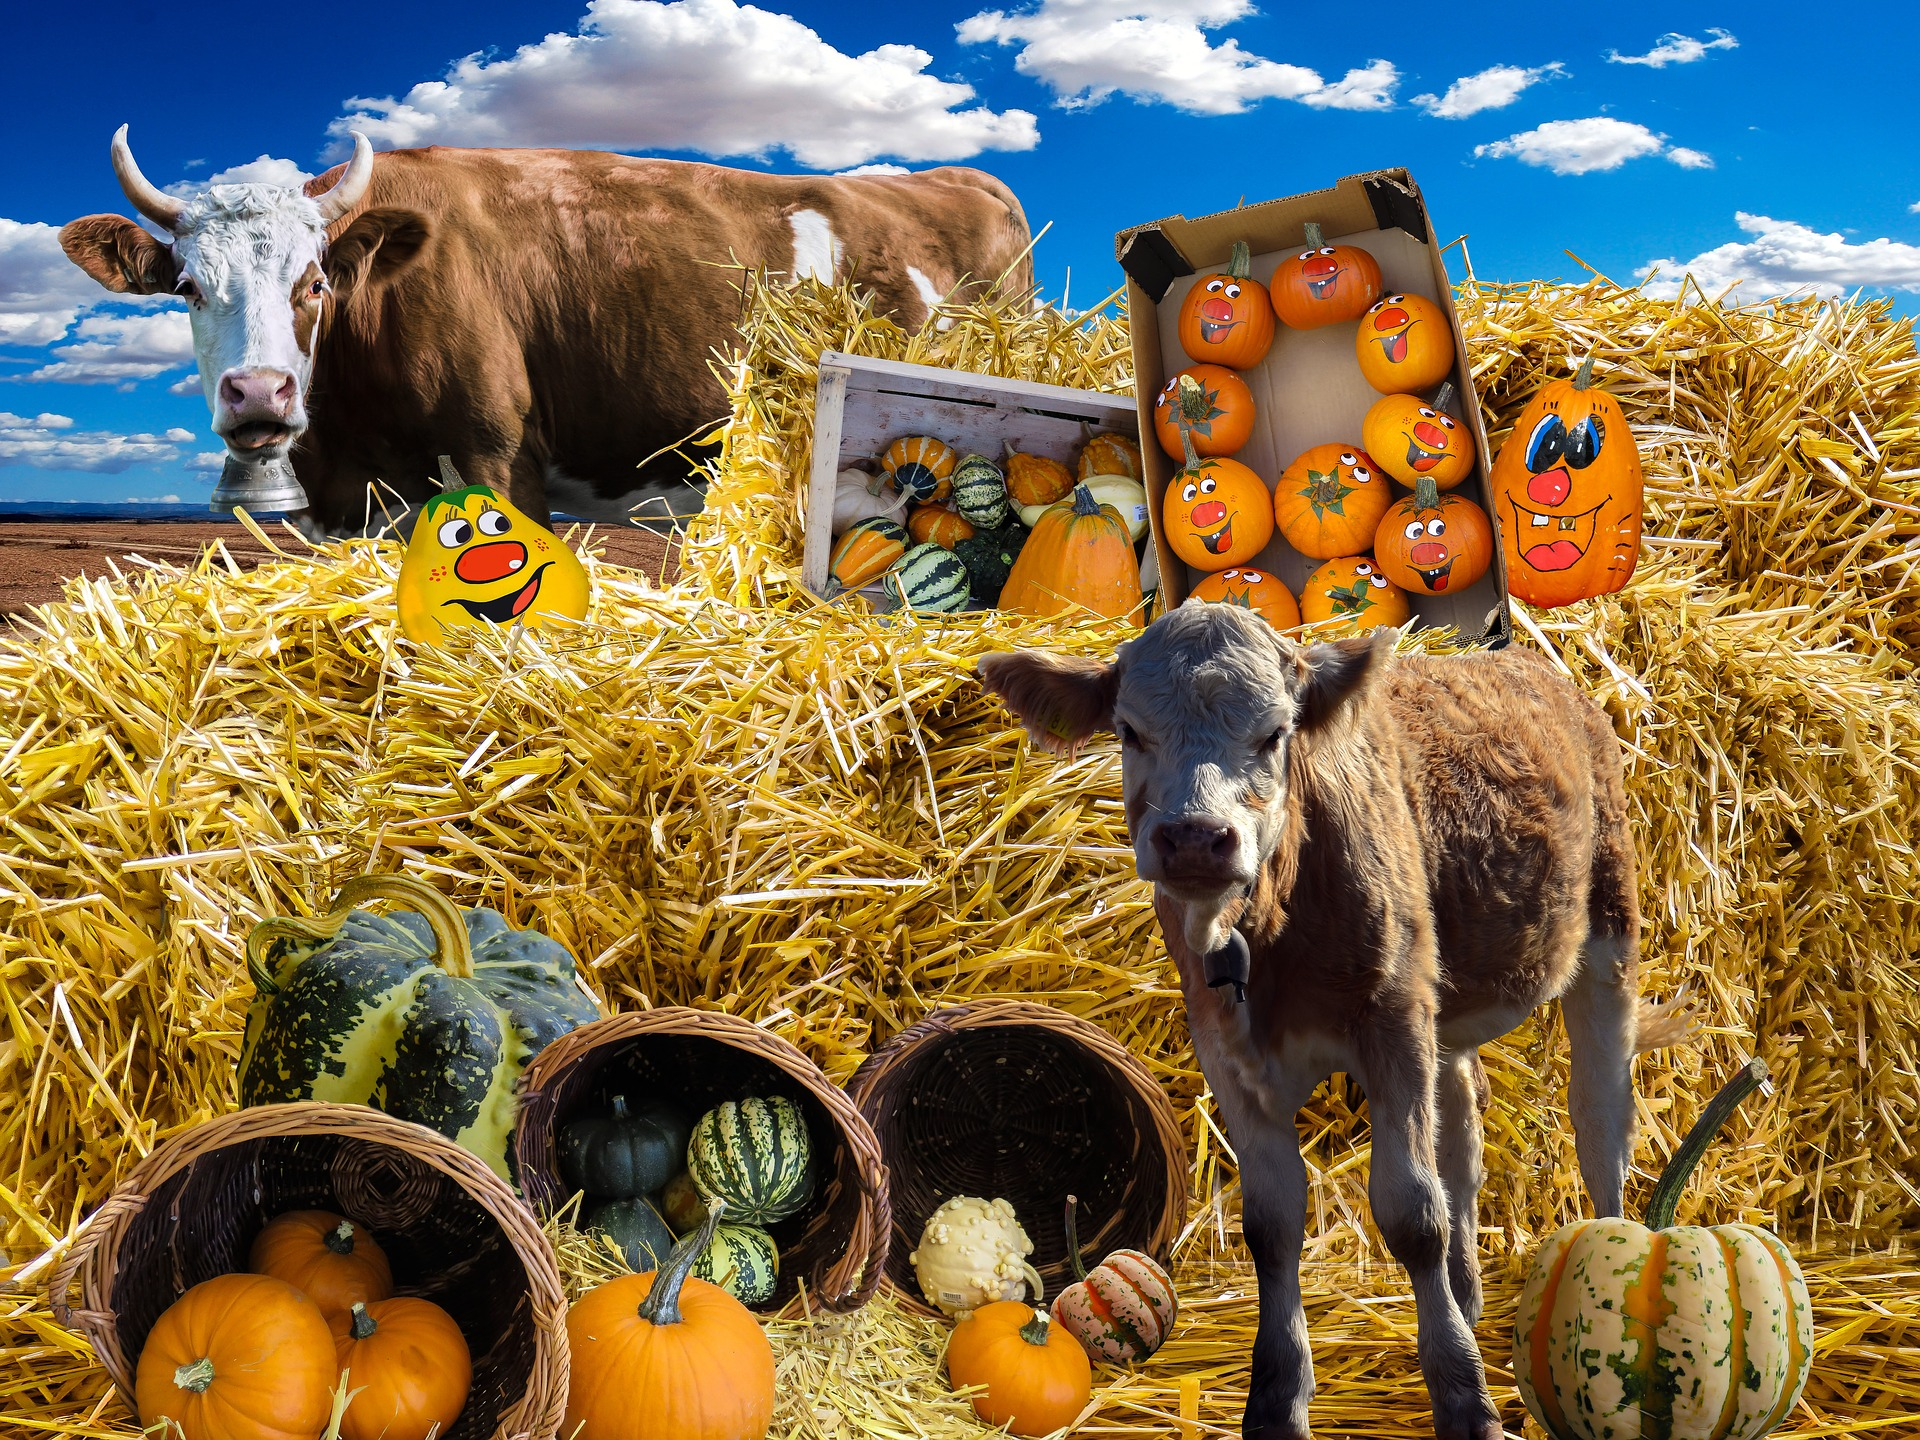 Pumpkin, straw bales and cows photo